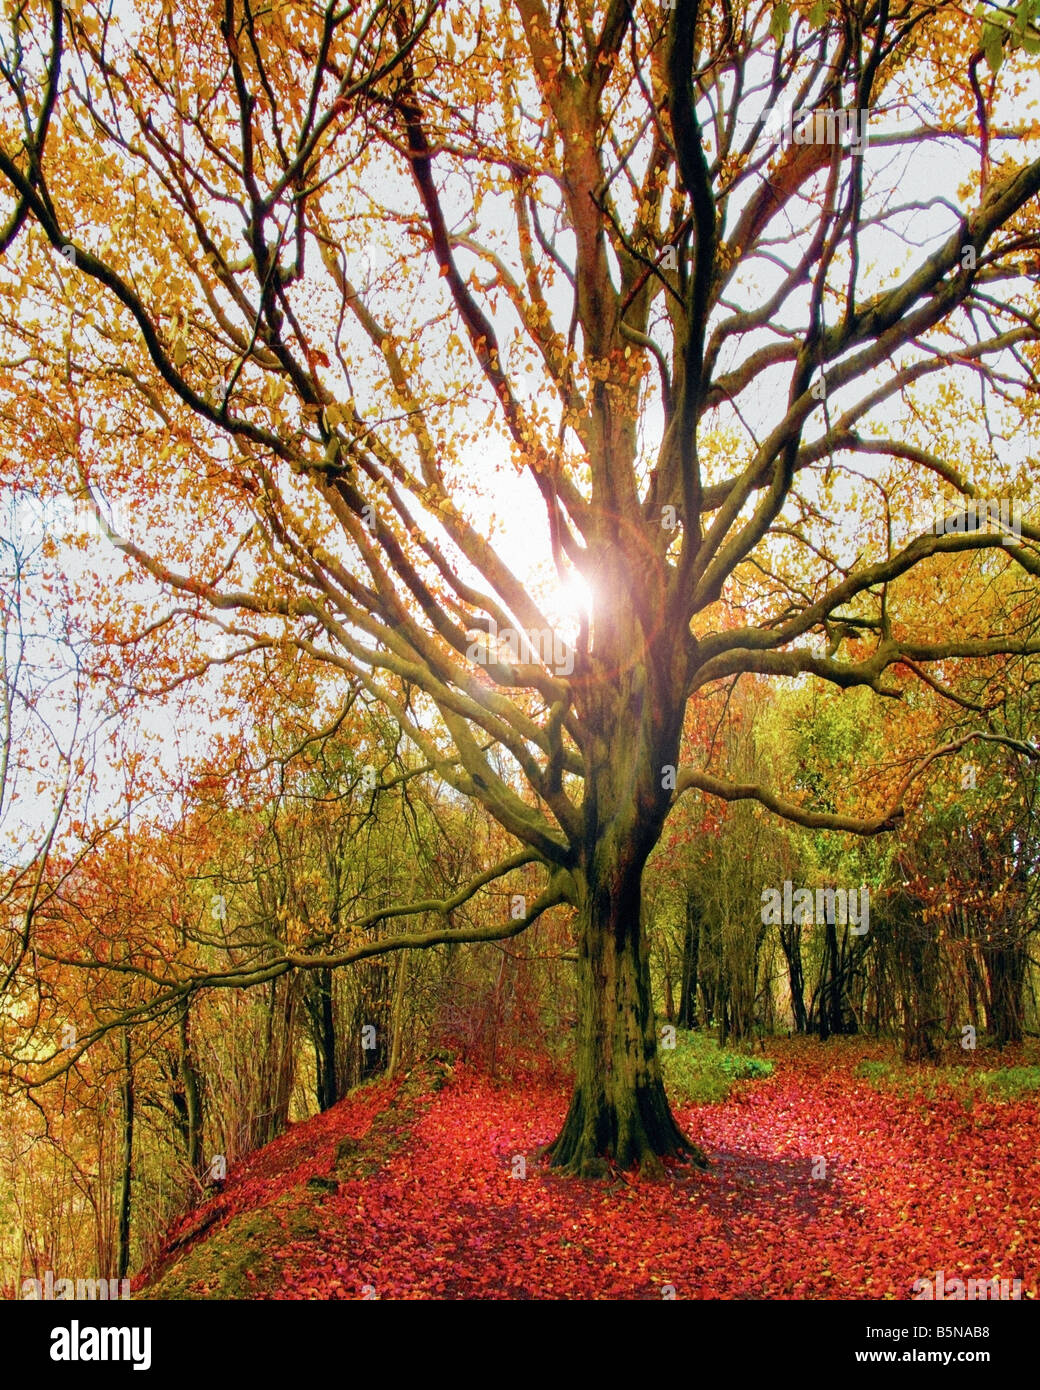 GB - GLOUCESTERSHIRE: Autumn scene at Crickley Hill Country Park - Stock Image